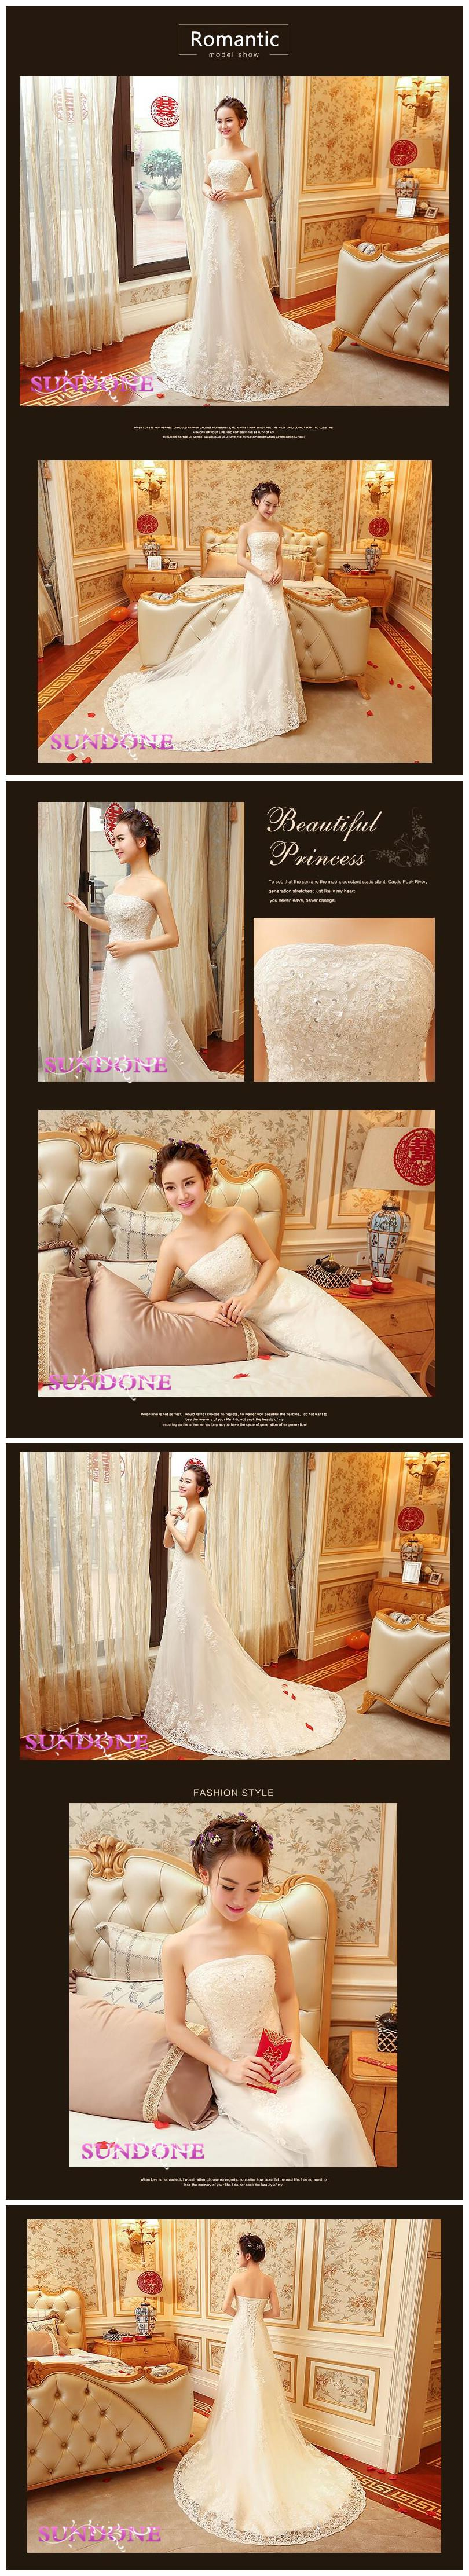 2016 New Fish Tail Fish Wedding Dress wd 1603